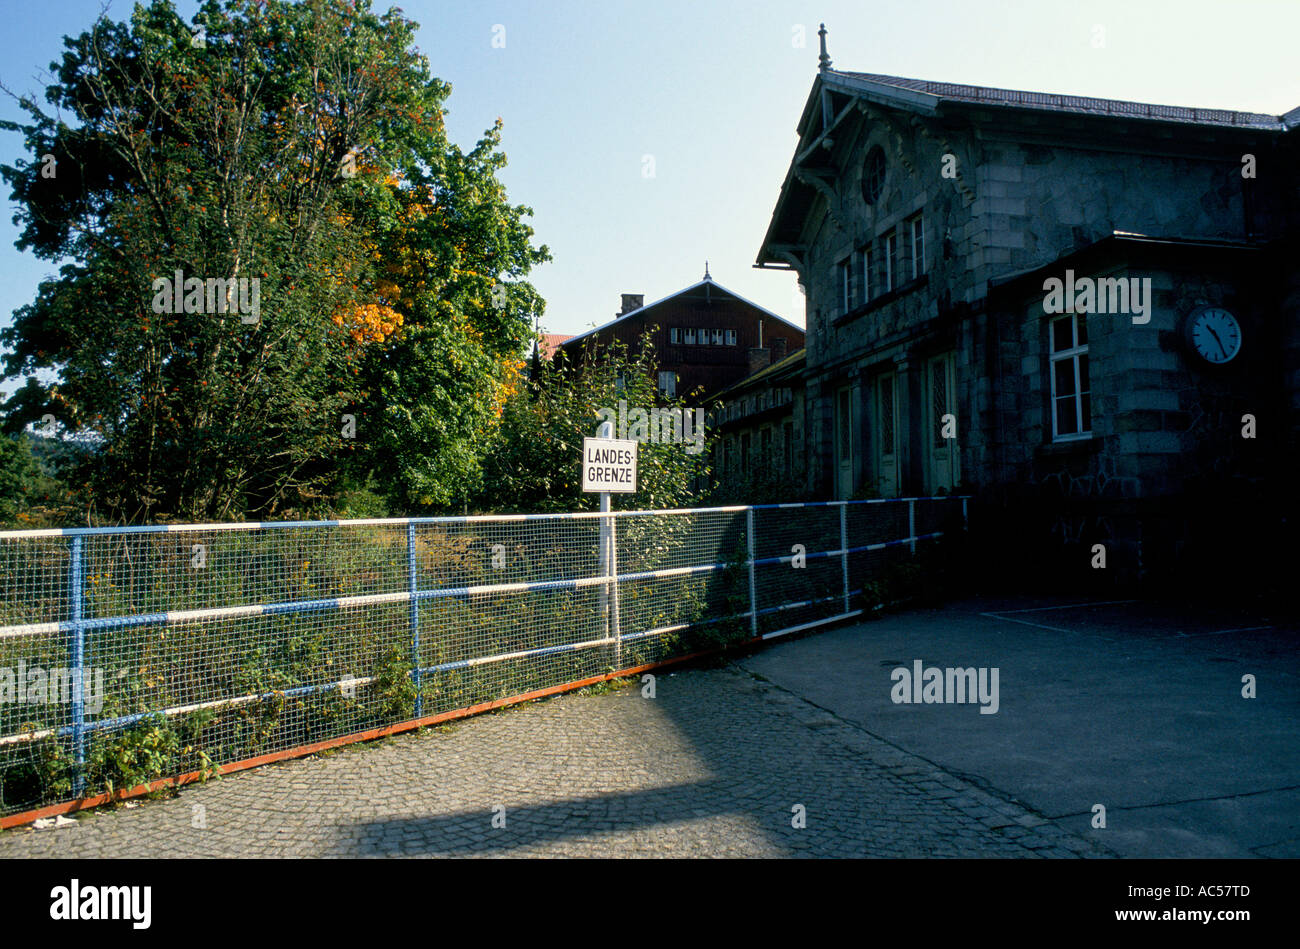 Iron curtain - The Fall Of Communism Iron Curtain Czech German Border At Bayerisch Eisenstein The Rail Station Is Cut In Two By